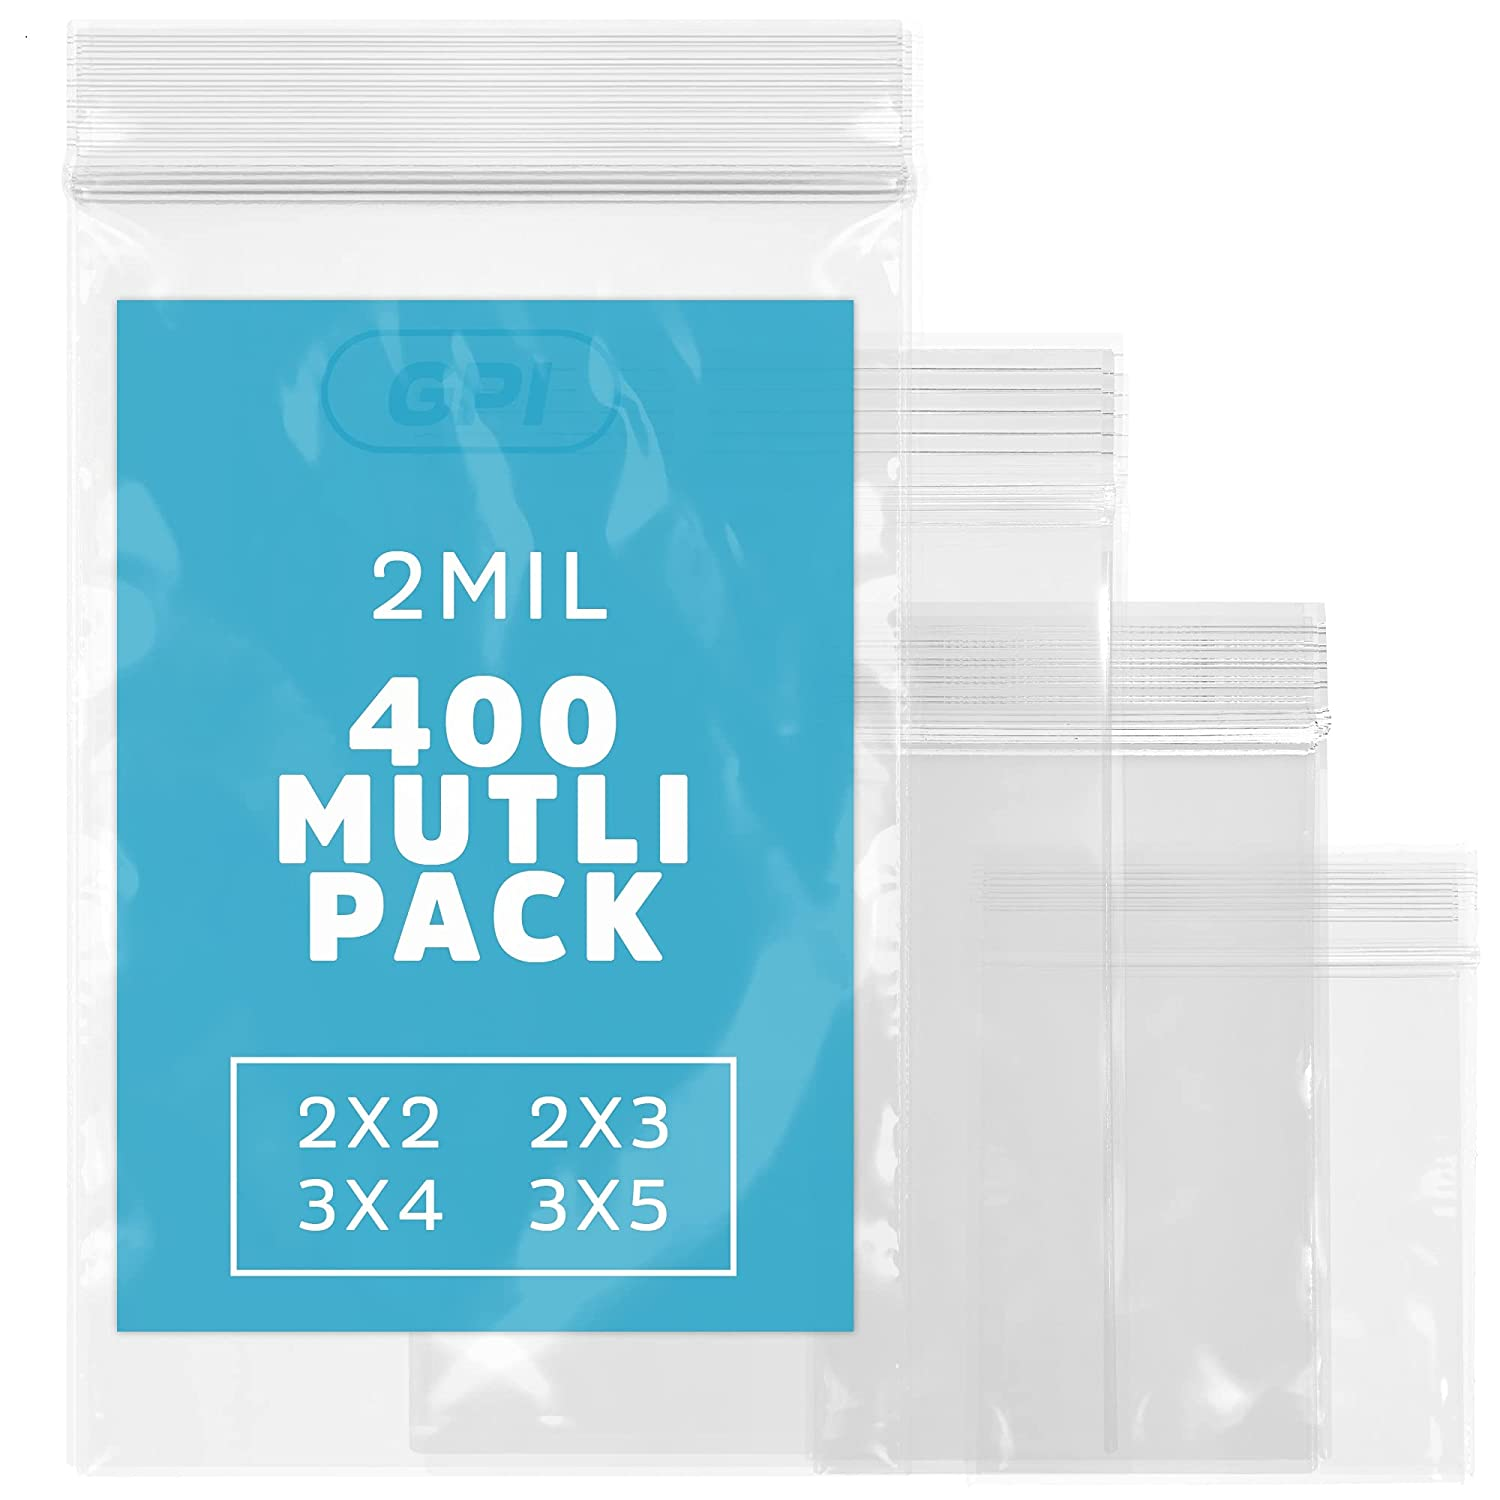 Assorted Clear Plastic Zip Bags - GPI Albuquerque Los Angeles Mall Mall Pack 2 4 400 Sizes mil